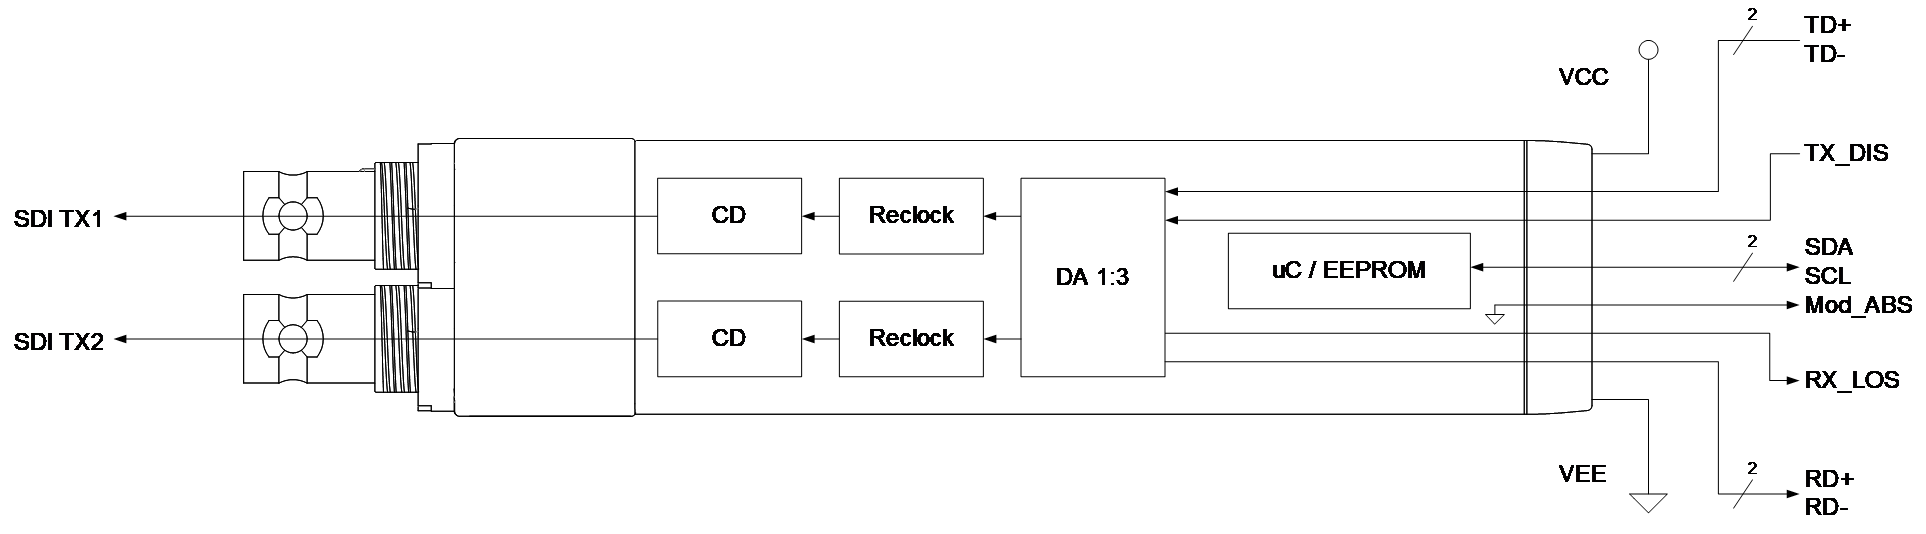 EB12HDRT-MMR-DA3 Block Diagram